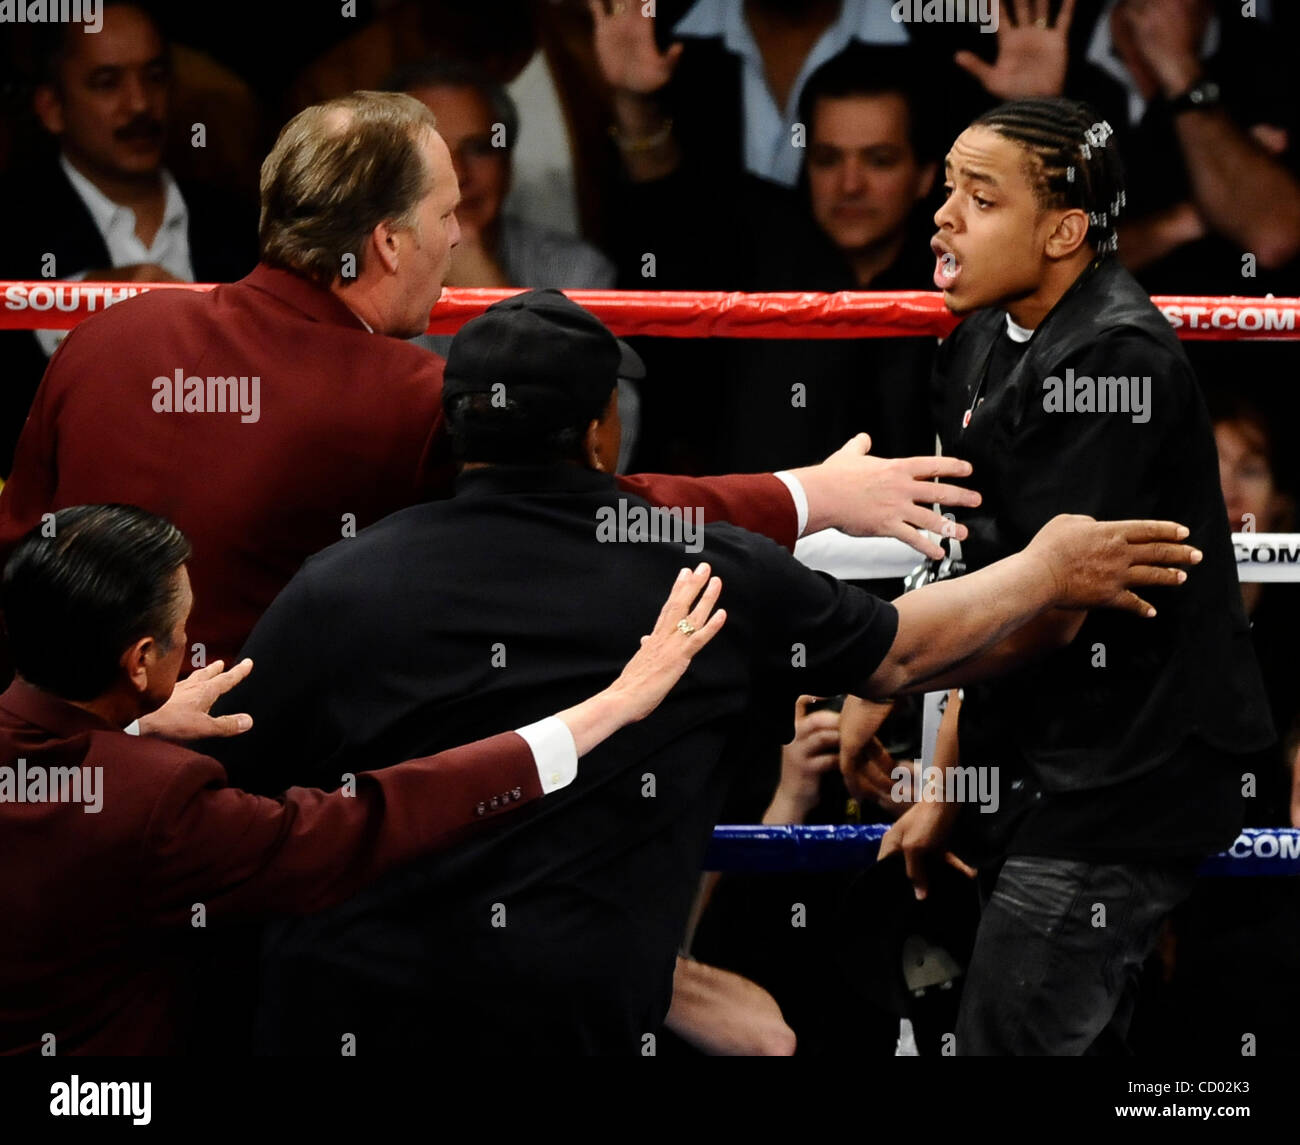 April 3,2010- Las Vegas NV., USA. Boxing Officials Toss